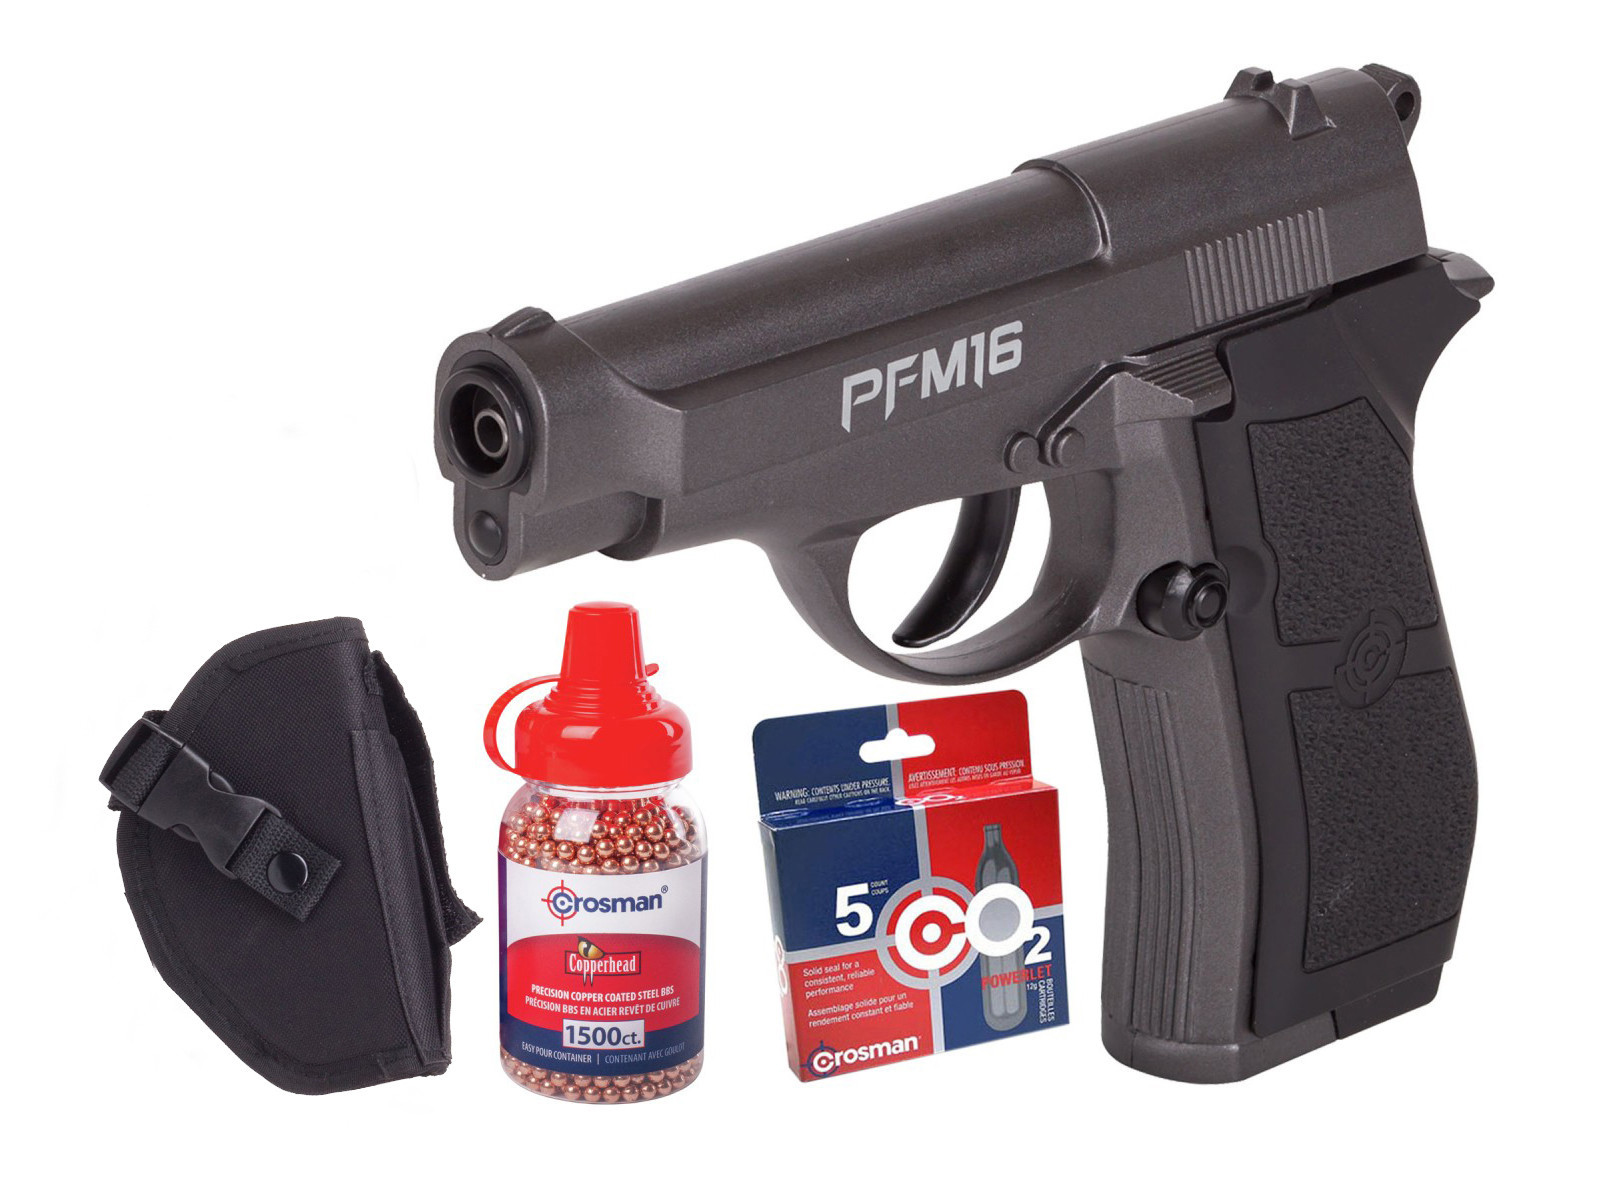 Crosman PFM16 Full Metal CO2 BB Pistol Kit 0.177